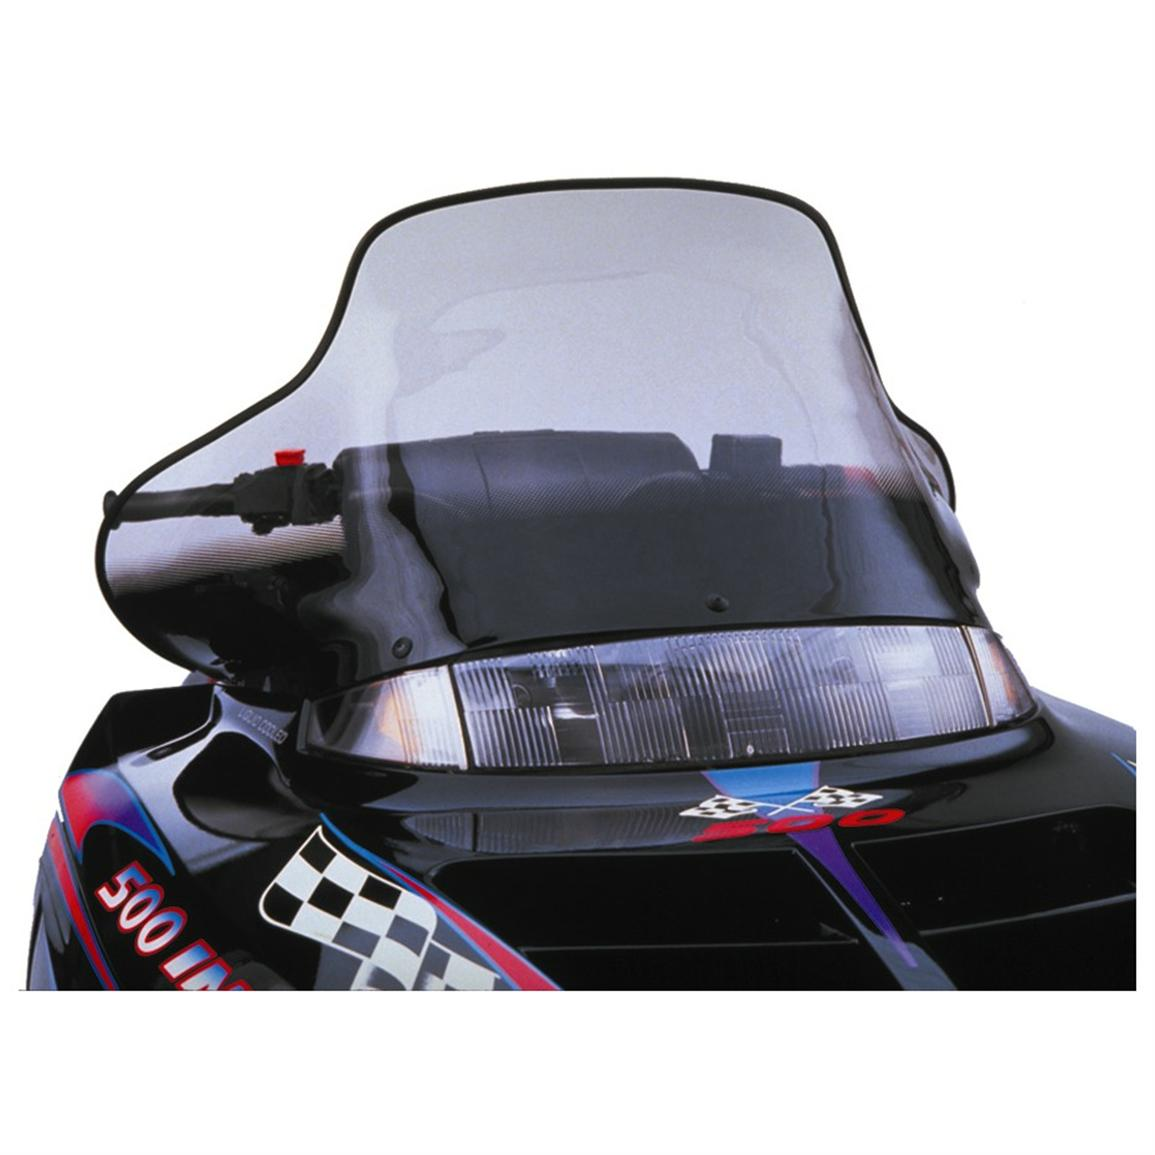 15 1/2 inch PowerMadd® Cobra Snowmobile Windshield for Polaris Evolved Chassis, Tint with Black Checks